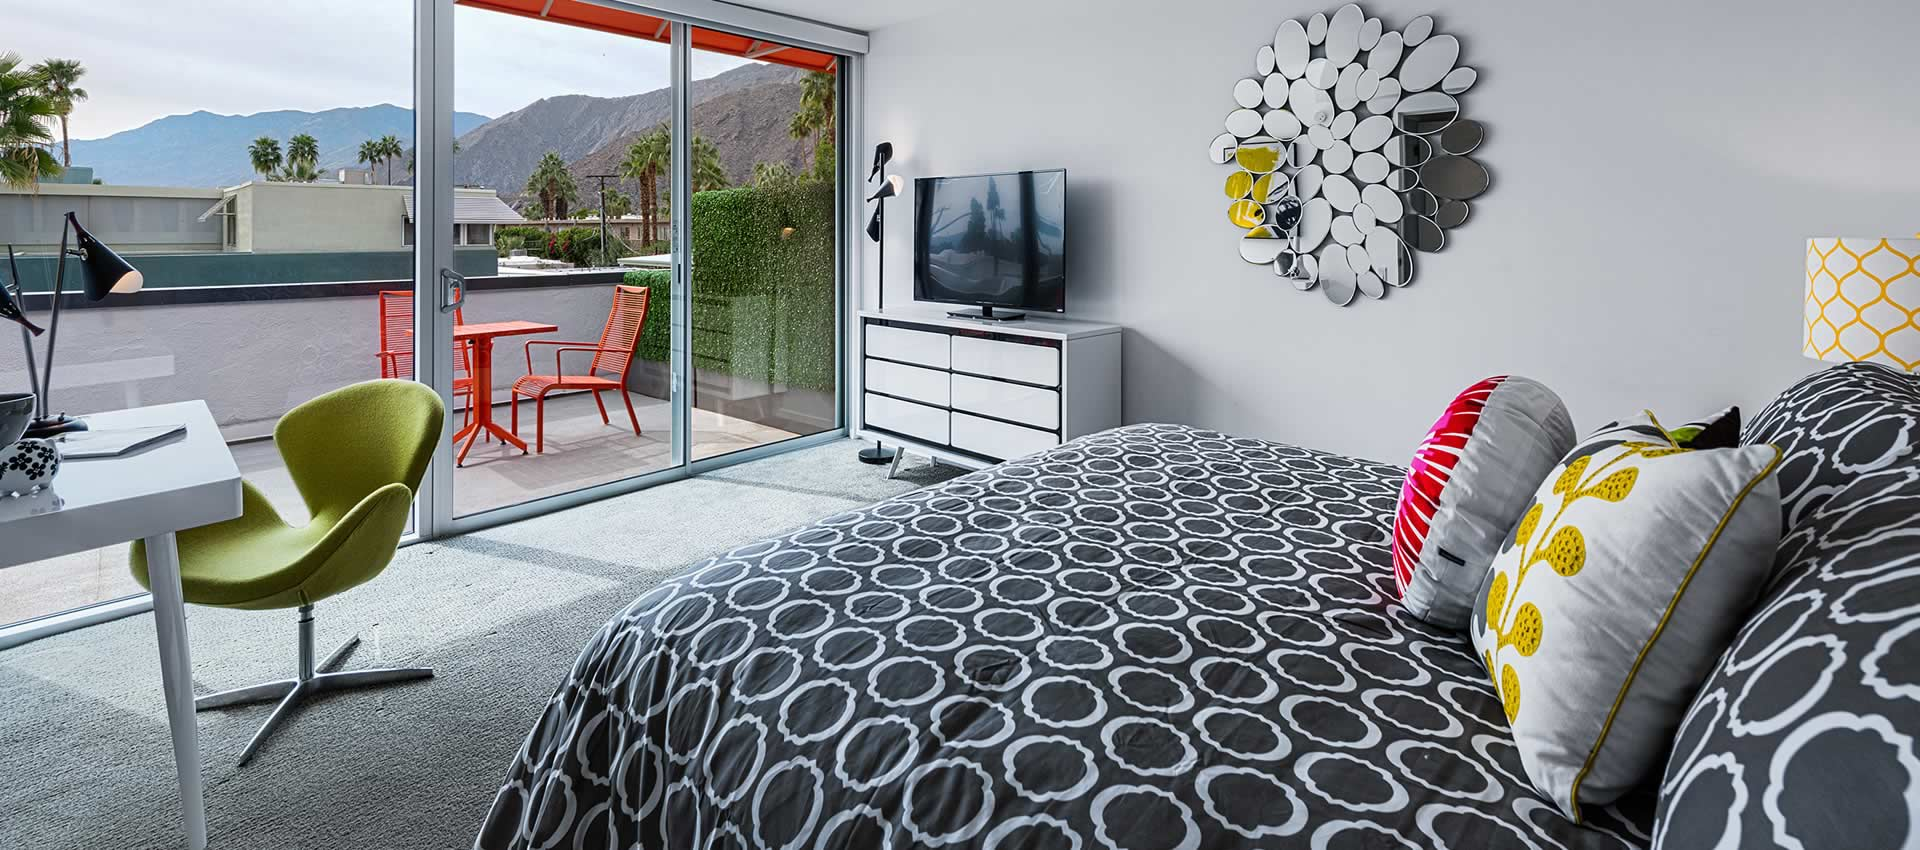 twist hotel room 221 bedroom with bed, TV and view of the mountains out the big windows